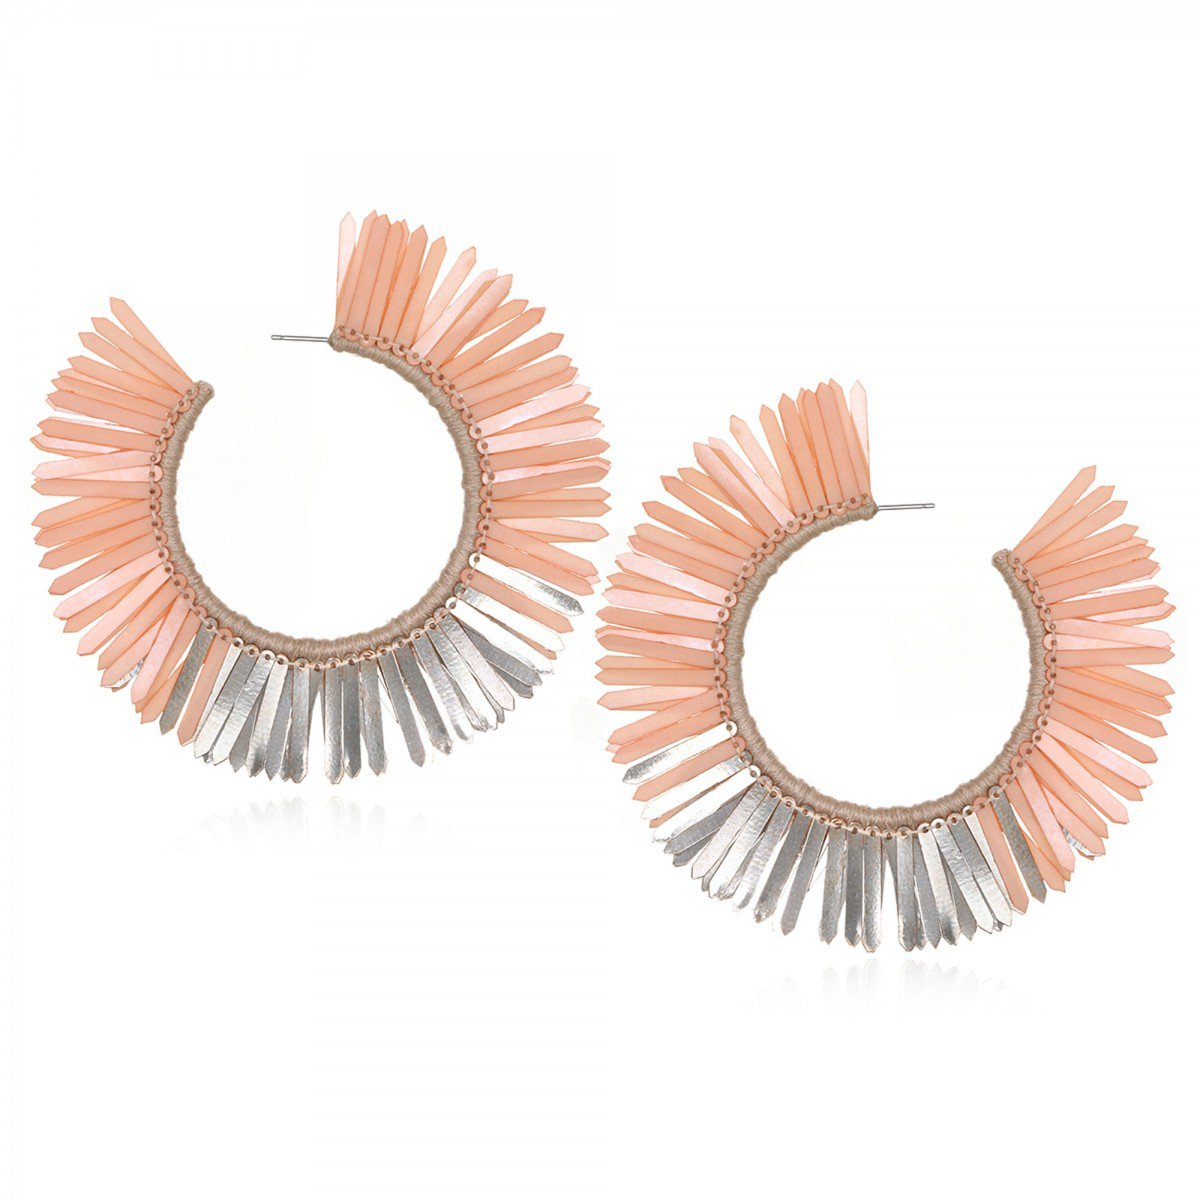 Blush Karaja Hoop Earrings by SUZANNA DAI